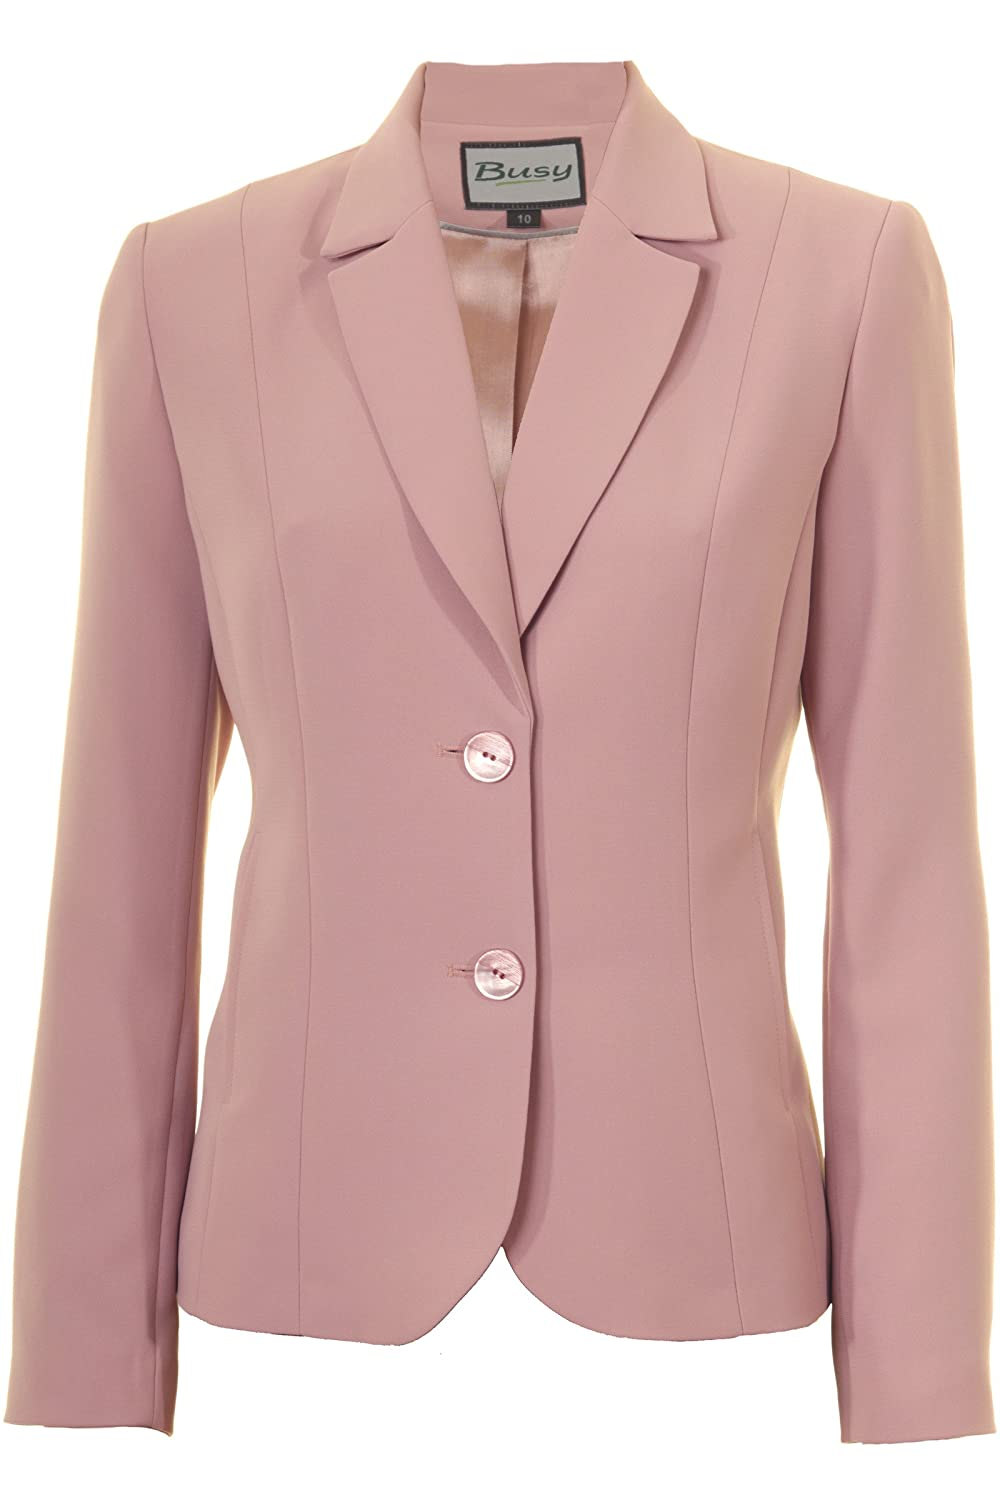 Busy Clothing Womens Dusty Pink Suit Jacket DustyPink44470